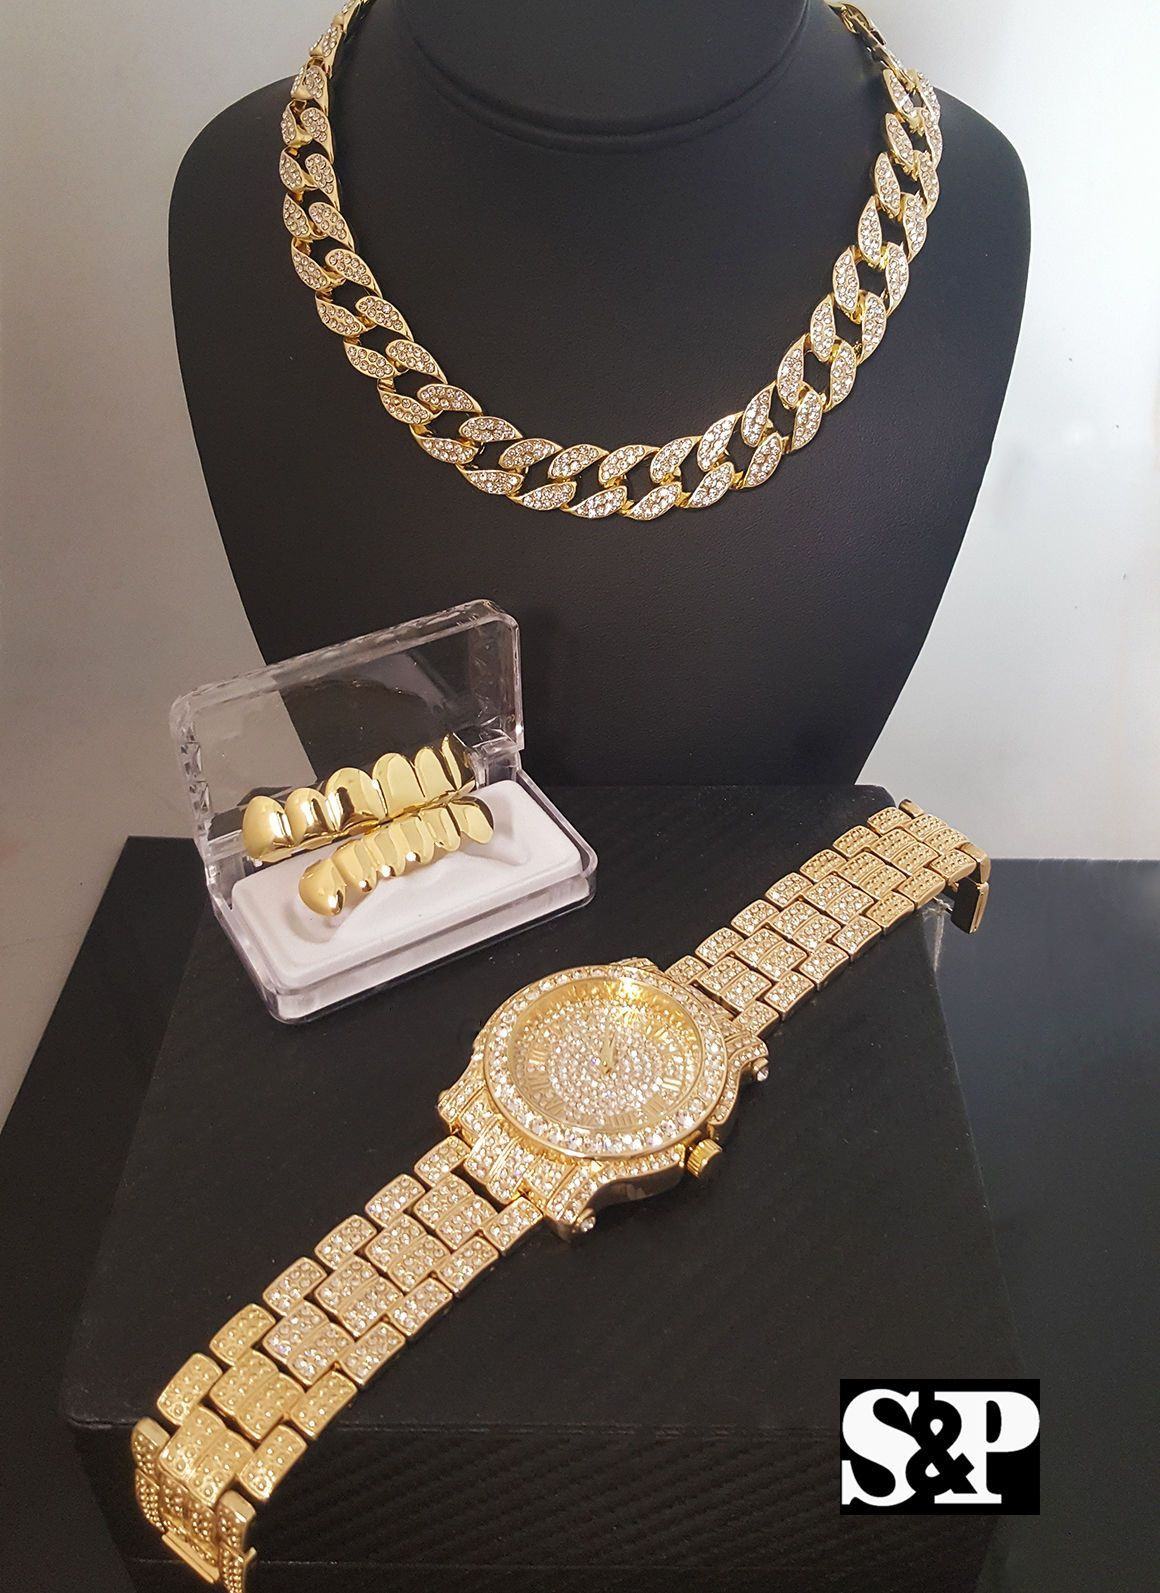 4ba2c07aad29b Iced out quavo watch, cuban choker chain & grillz bling box in 2019 ...